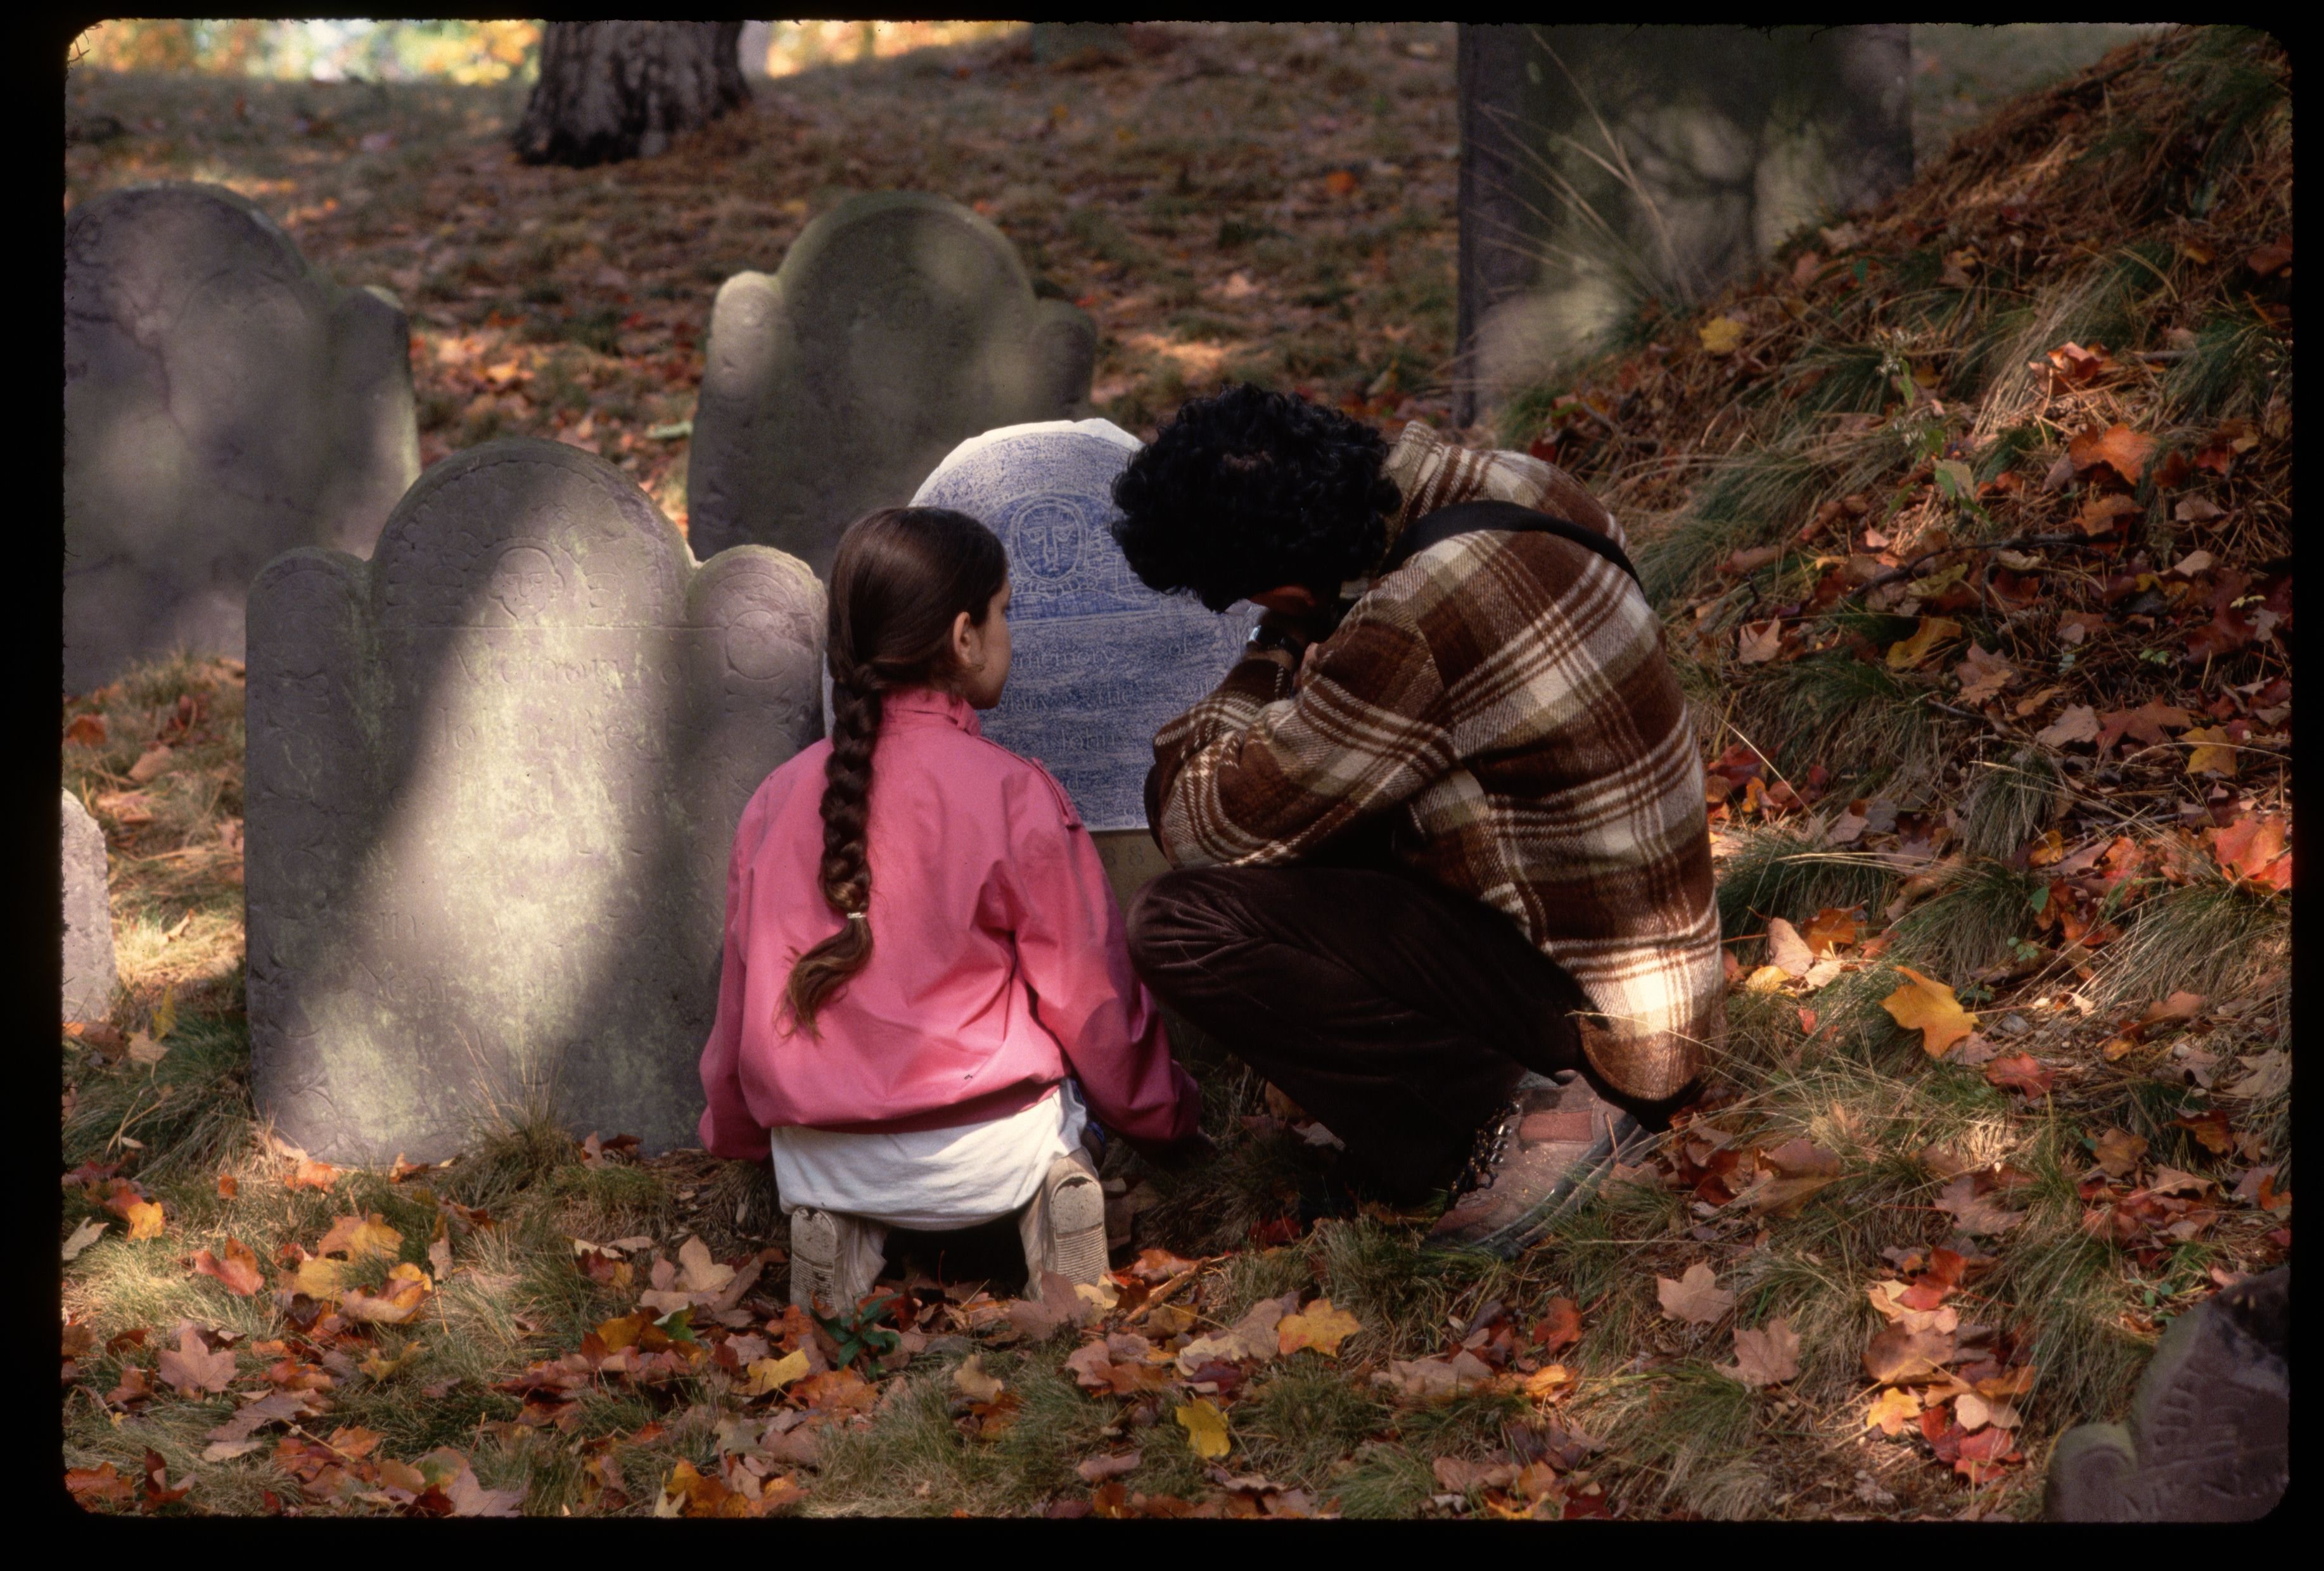 Tourists Rubbing Colonial Graves at Massachusetts Cemetery